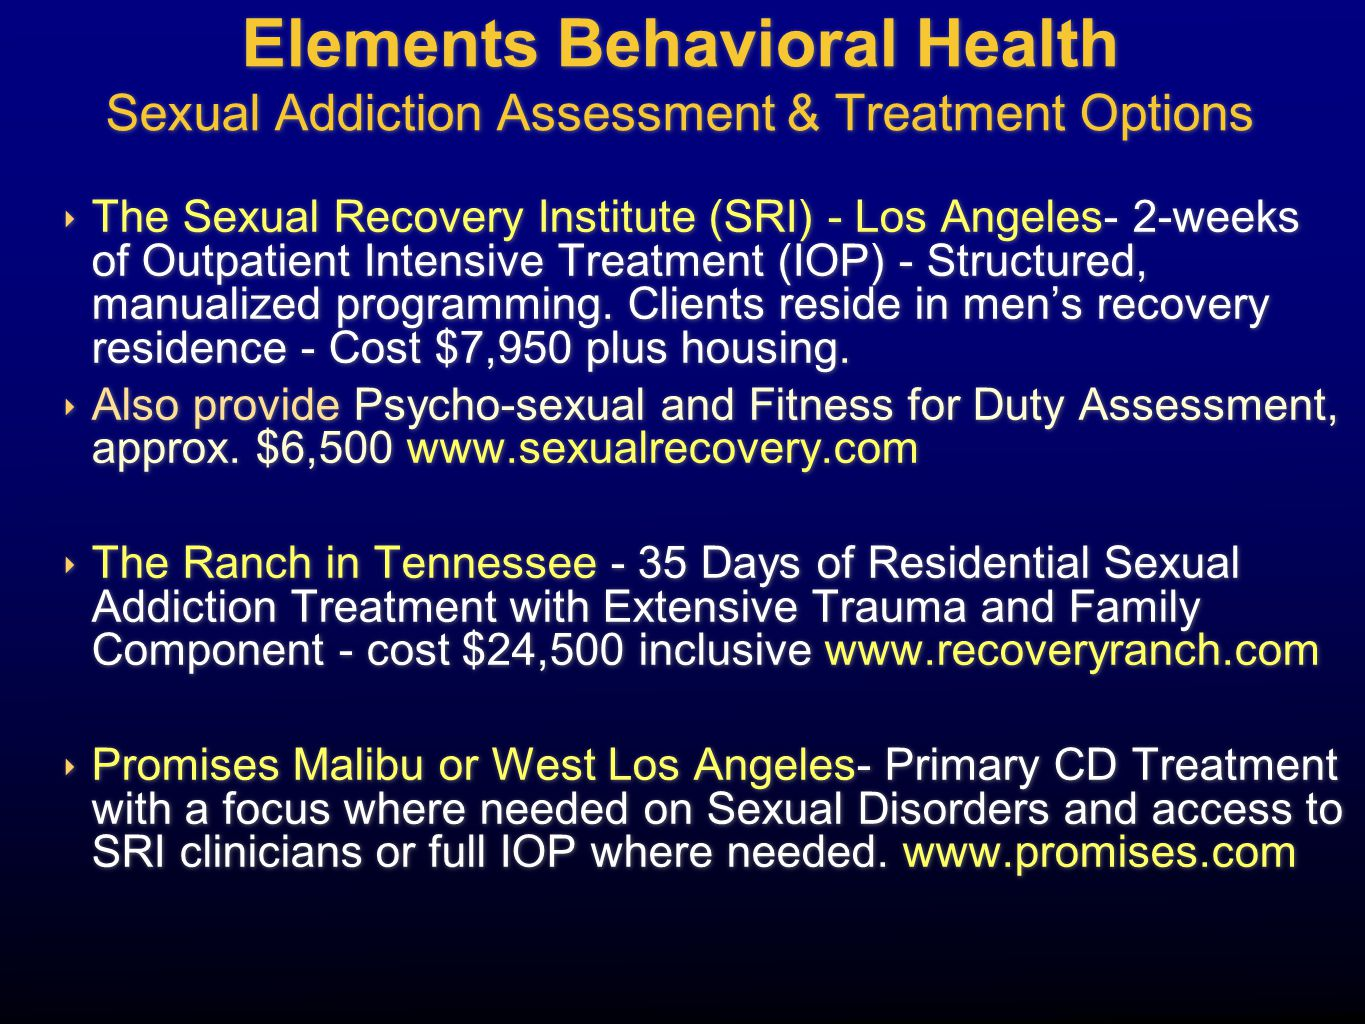 Elements Behavioral Health Sexual Addiction Assessment & Treatment Options ‣ The Sexual Recovery Institute (SRI) - Los Angeles- 2-weeks of Outpatient Intensive Treatment (IOP) - Structured, manualized programming.